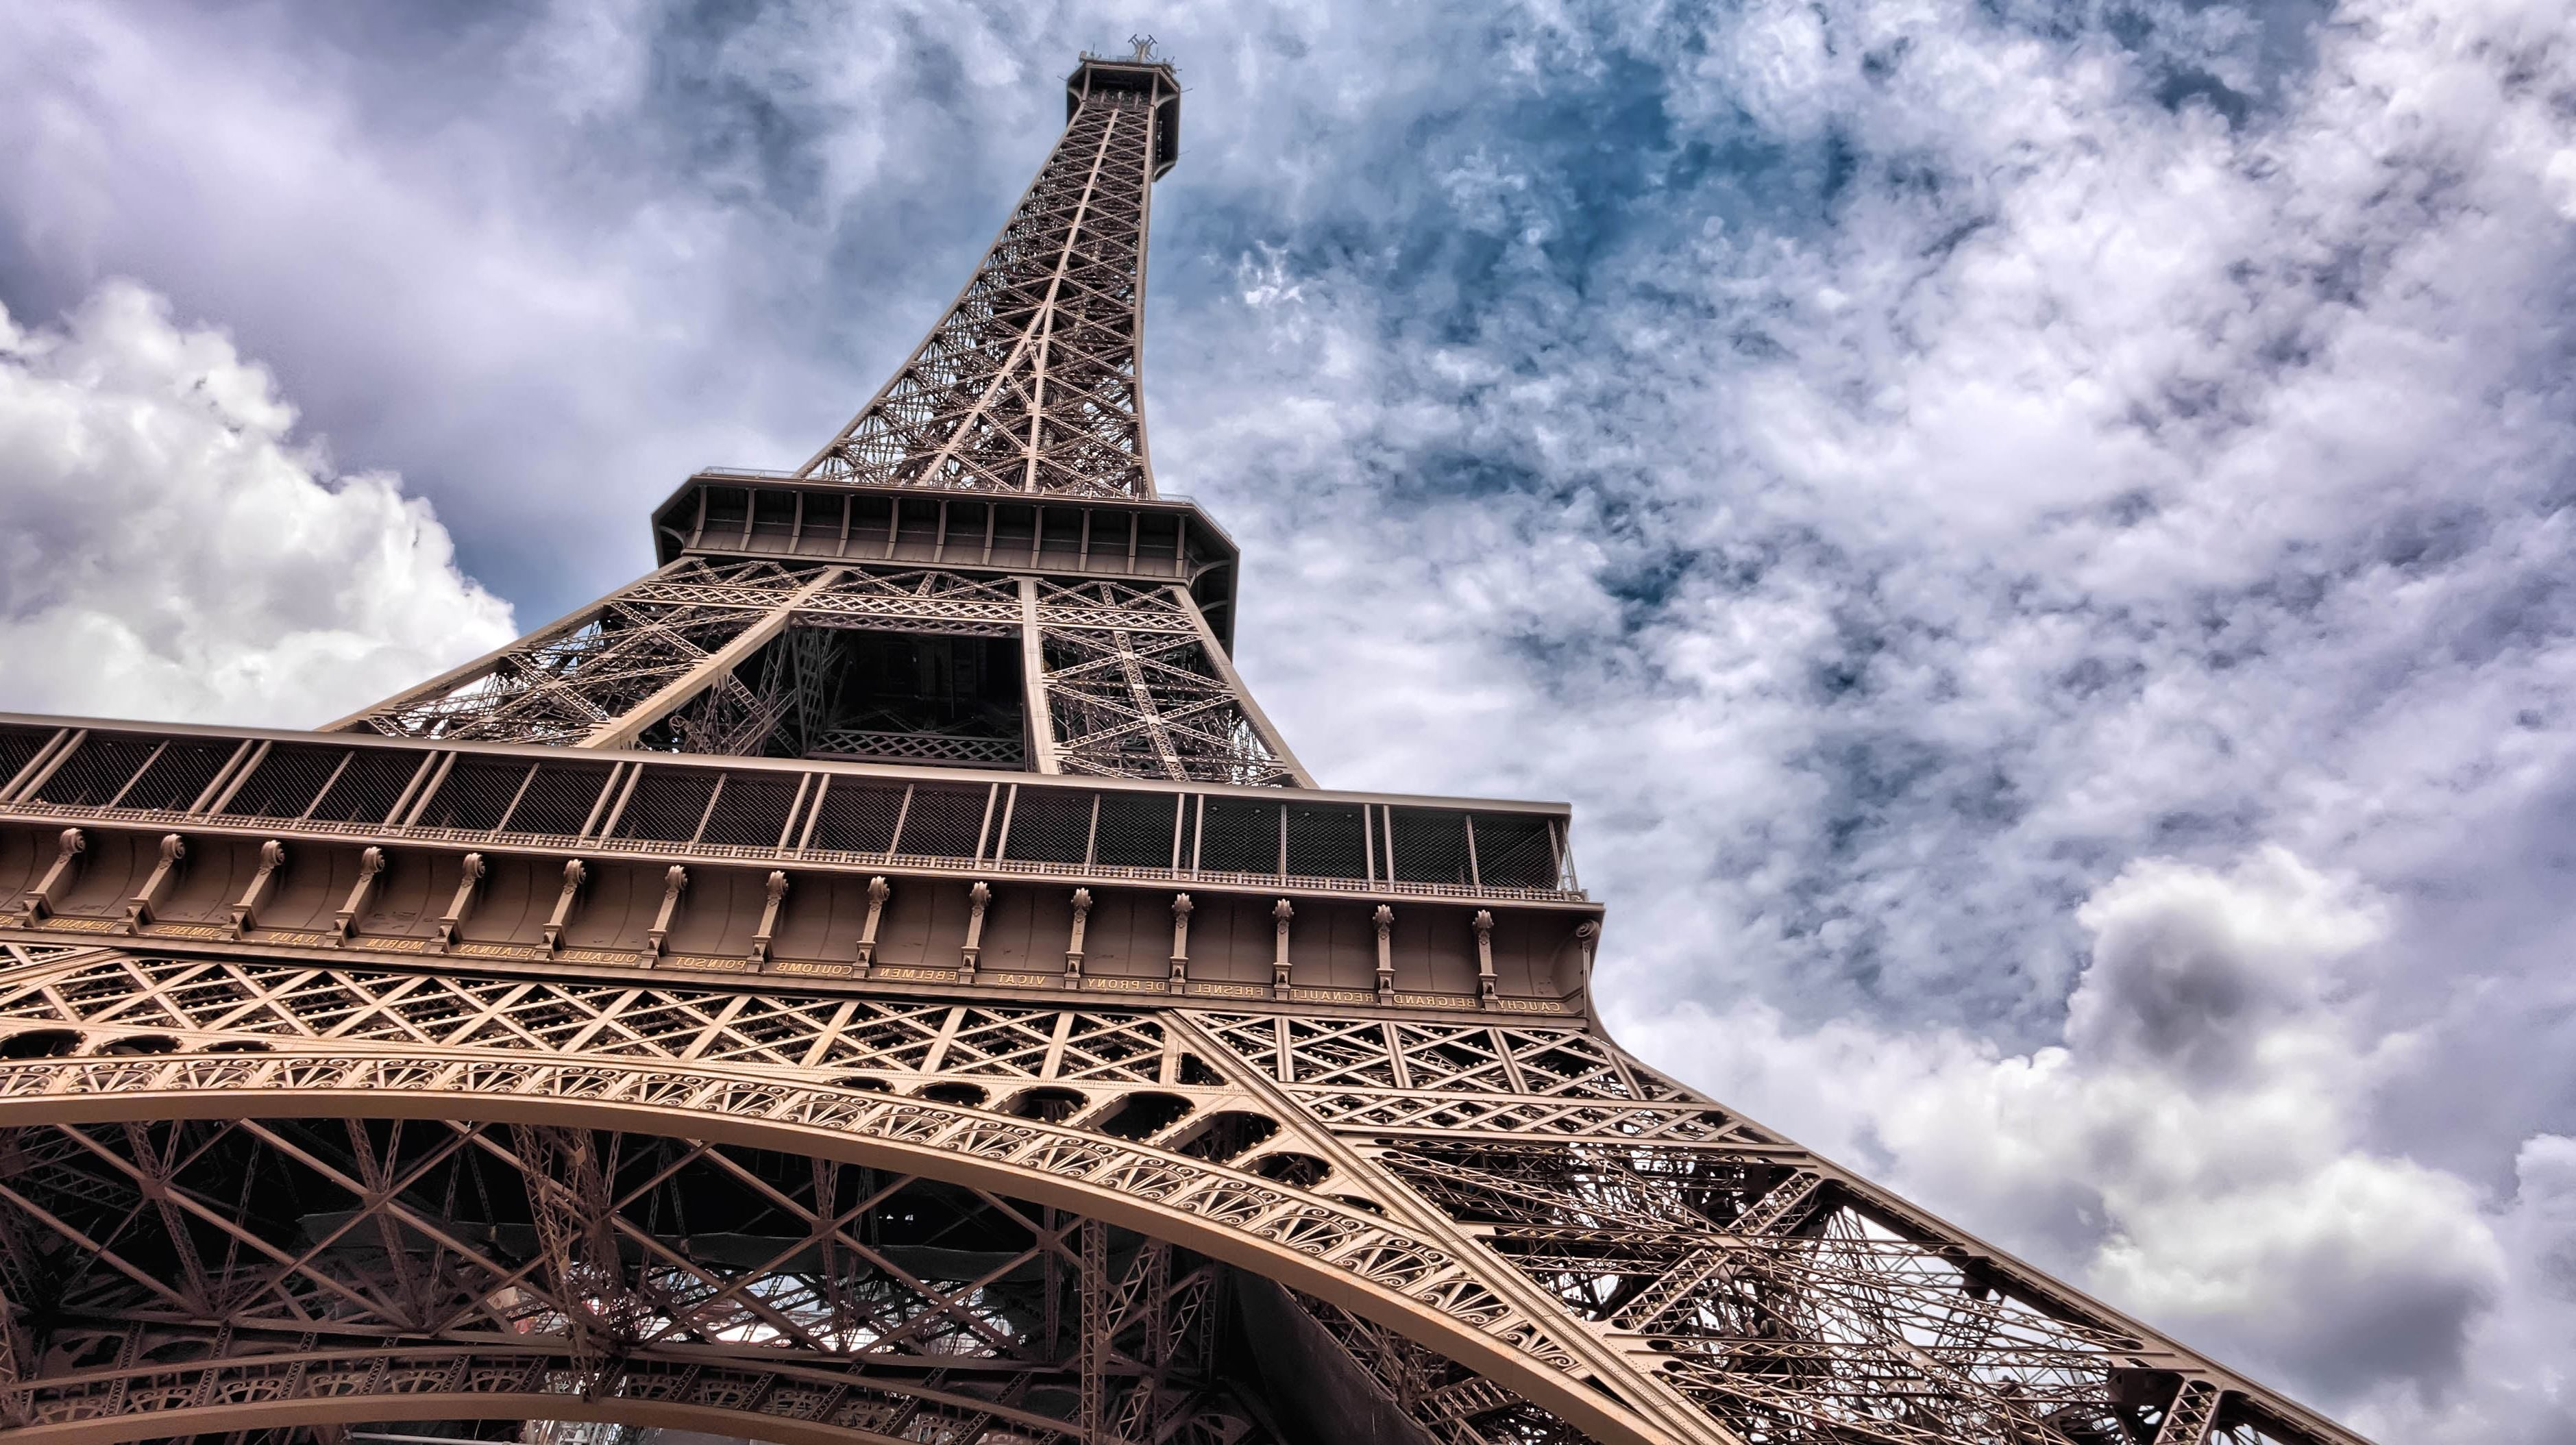 Full Hd Wallpapers High Resolution Free Download Free Picture Eiffel Tower Paris France Construction